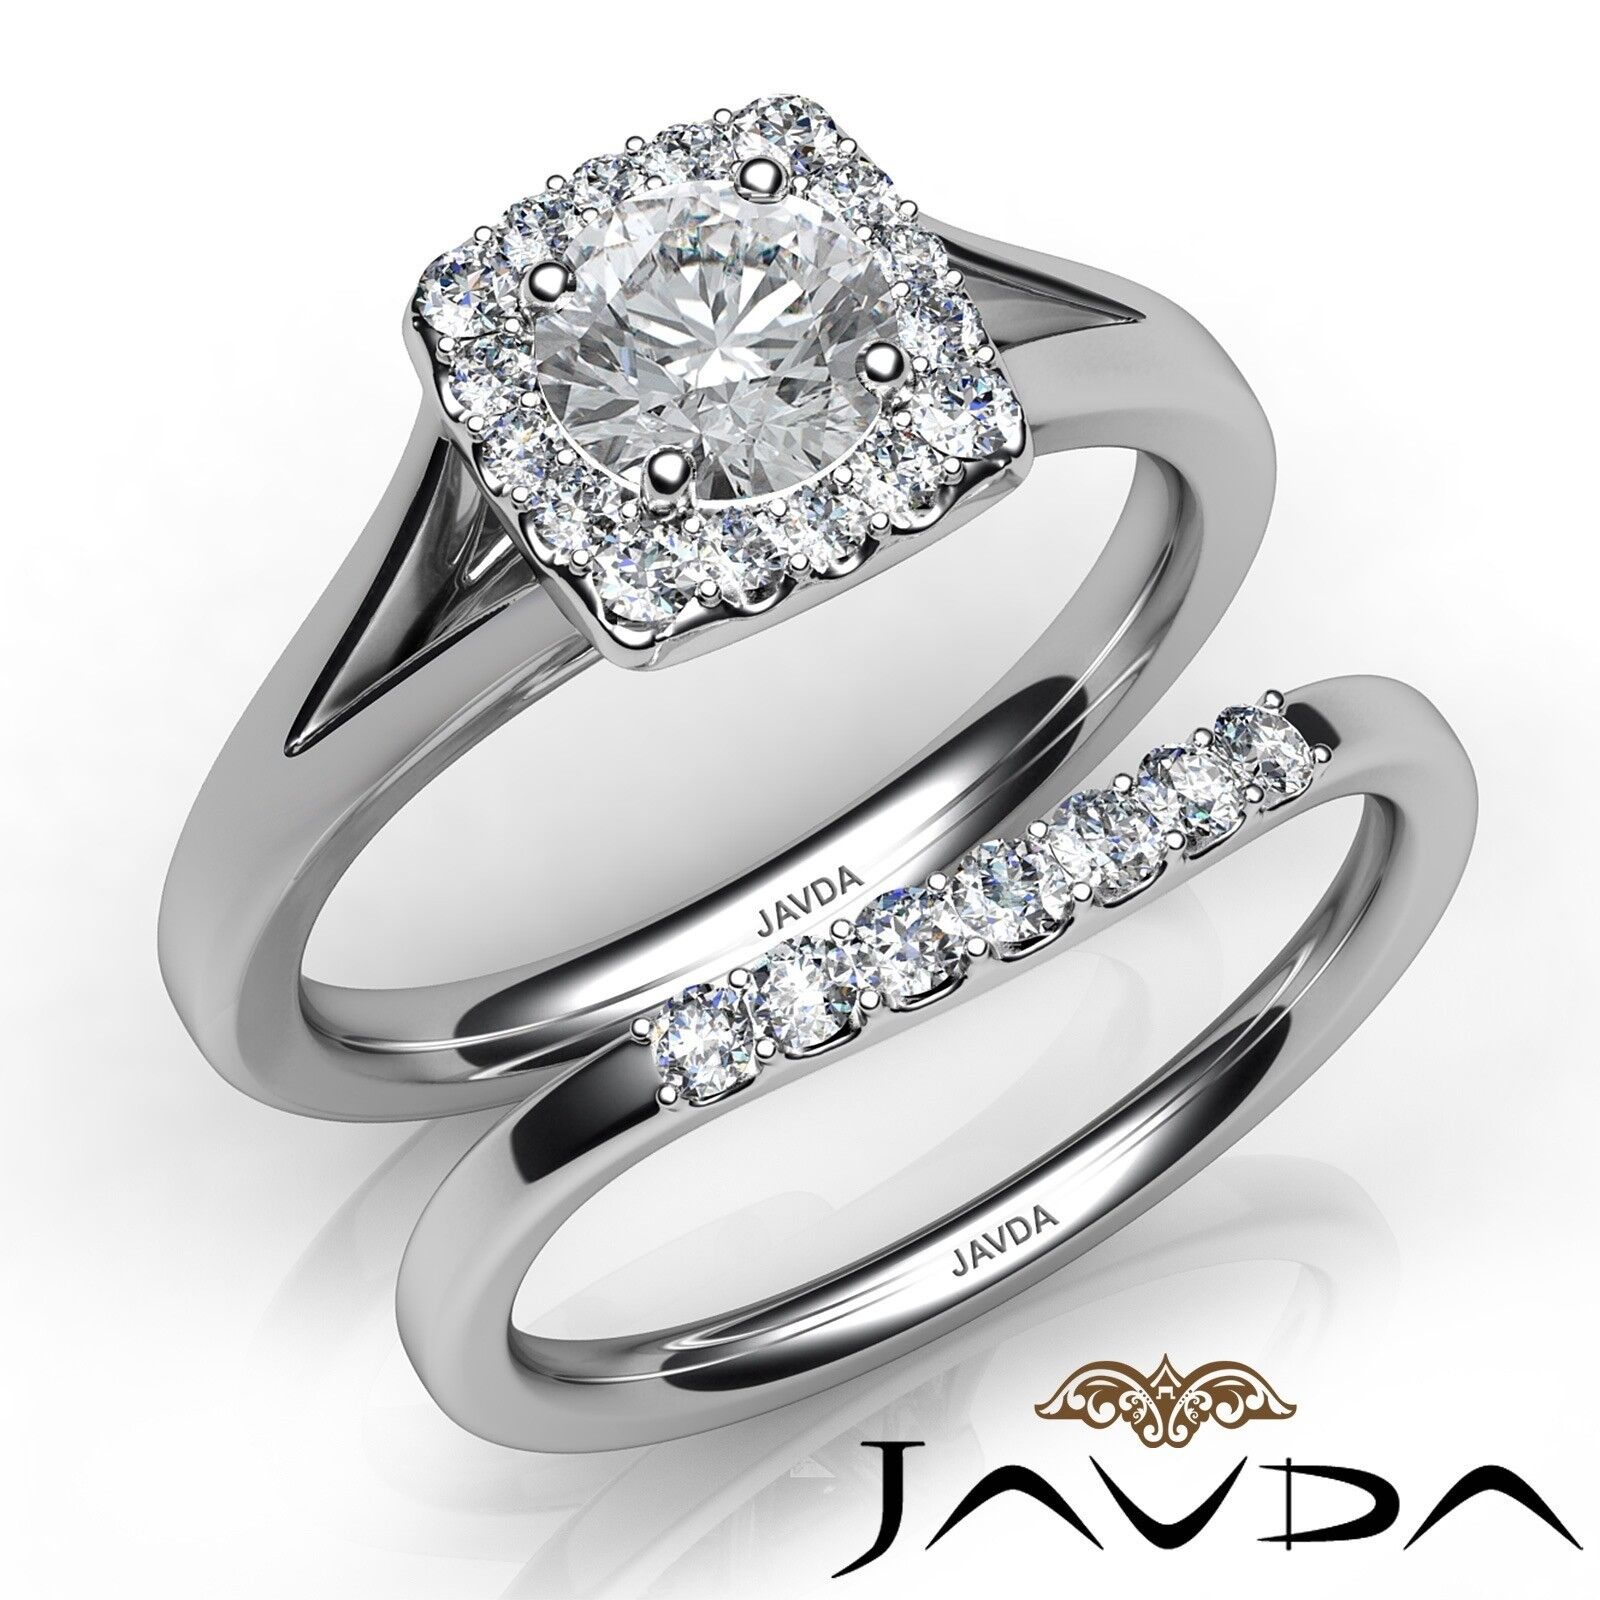 1.62ctw Halo Side Stone Bridal Set Round Diamond Engagement Ring GIA E-VVS1 Gold